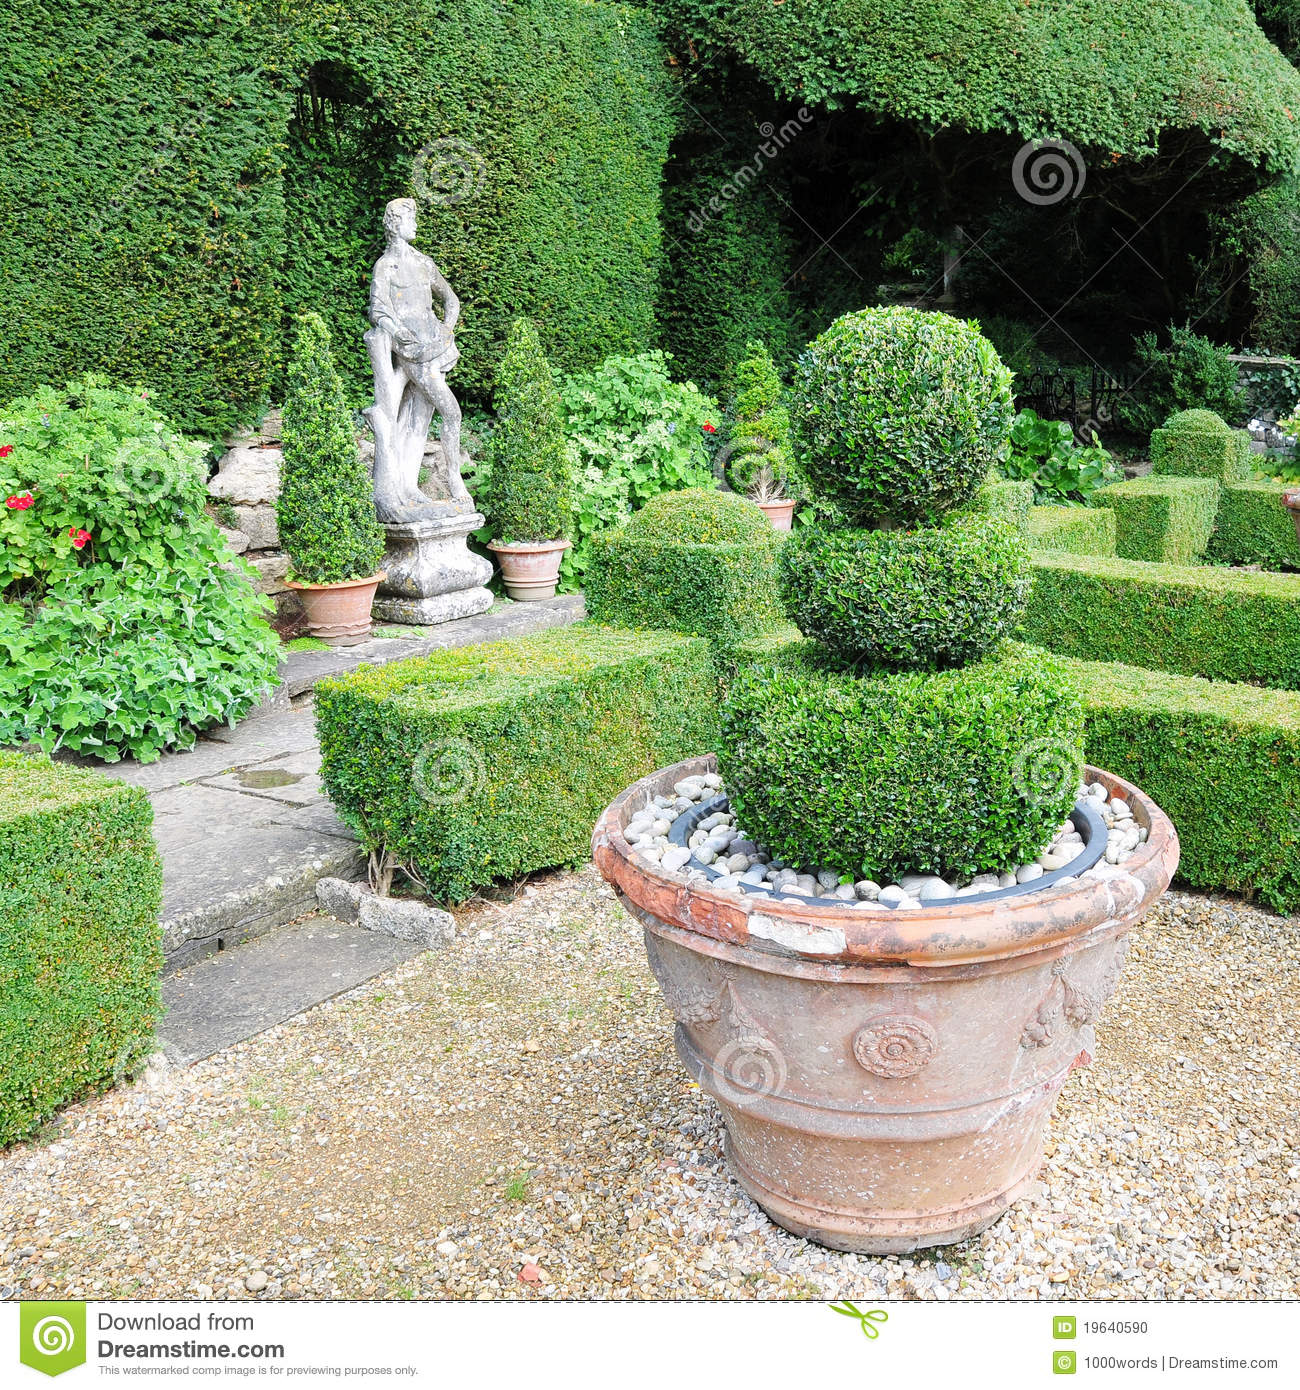 10 168 Topiary Garden Photos Free Royalty Free Stock Photos From Dreamstime